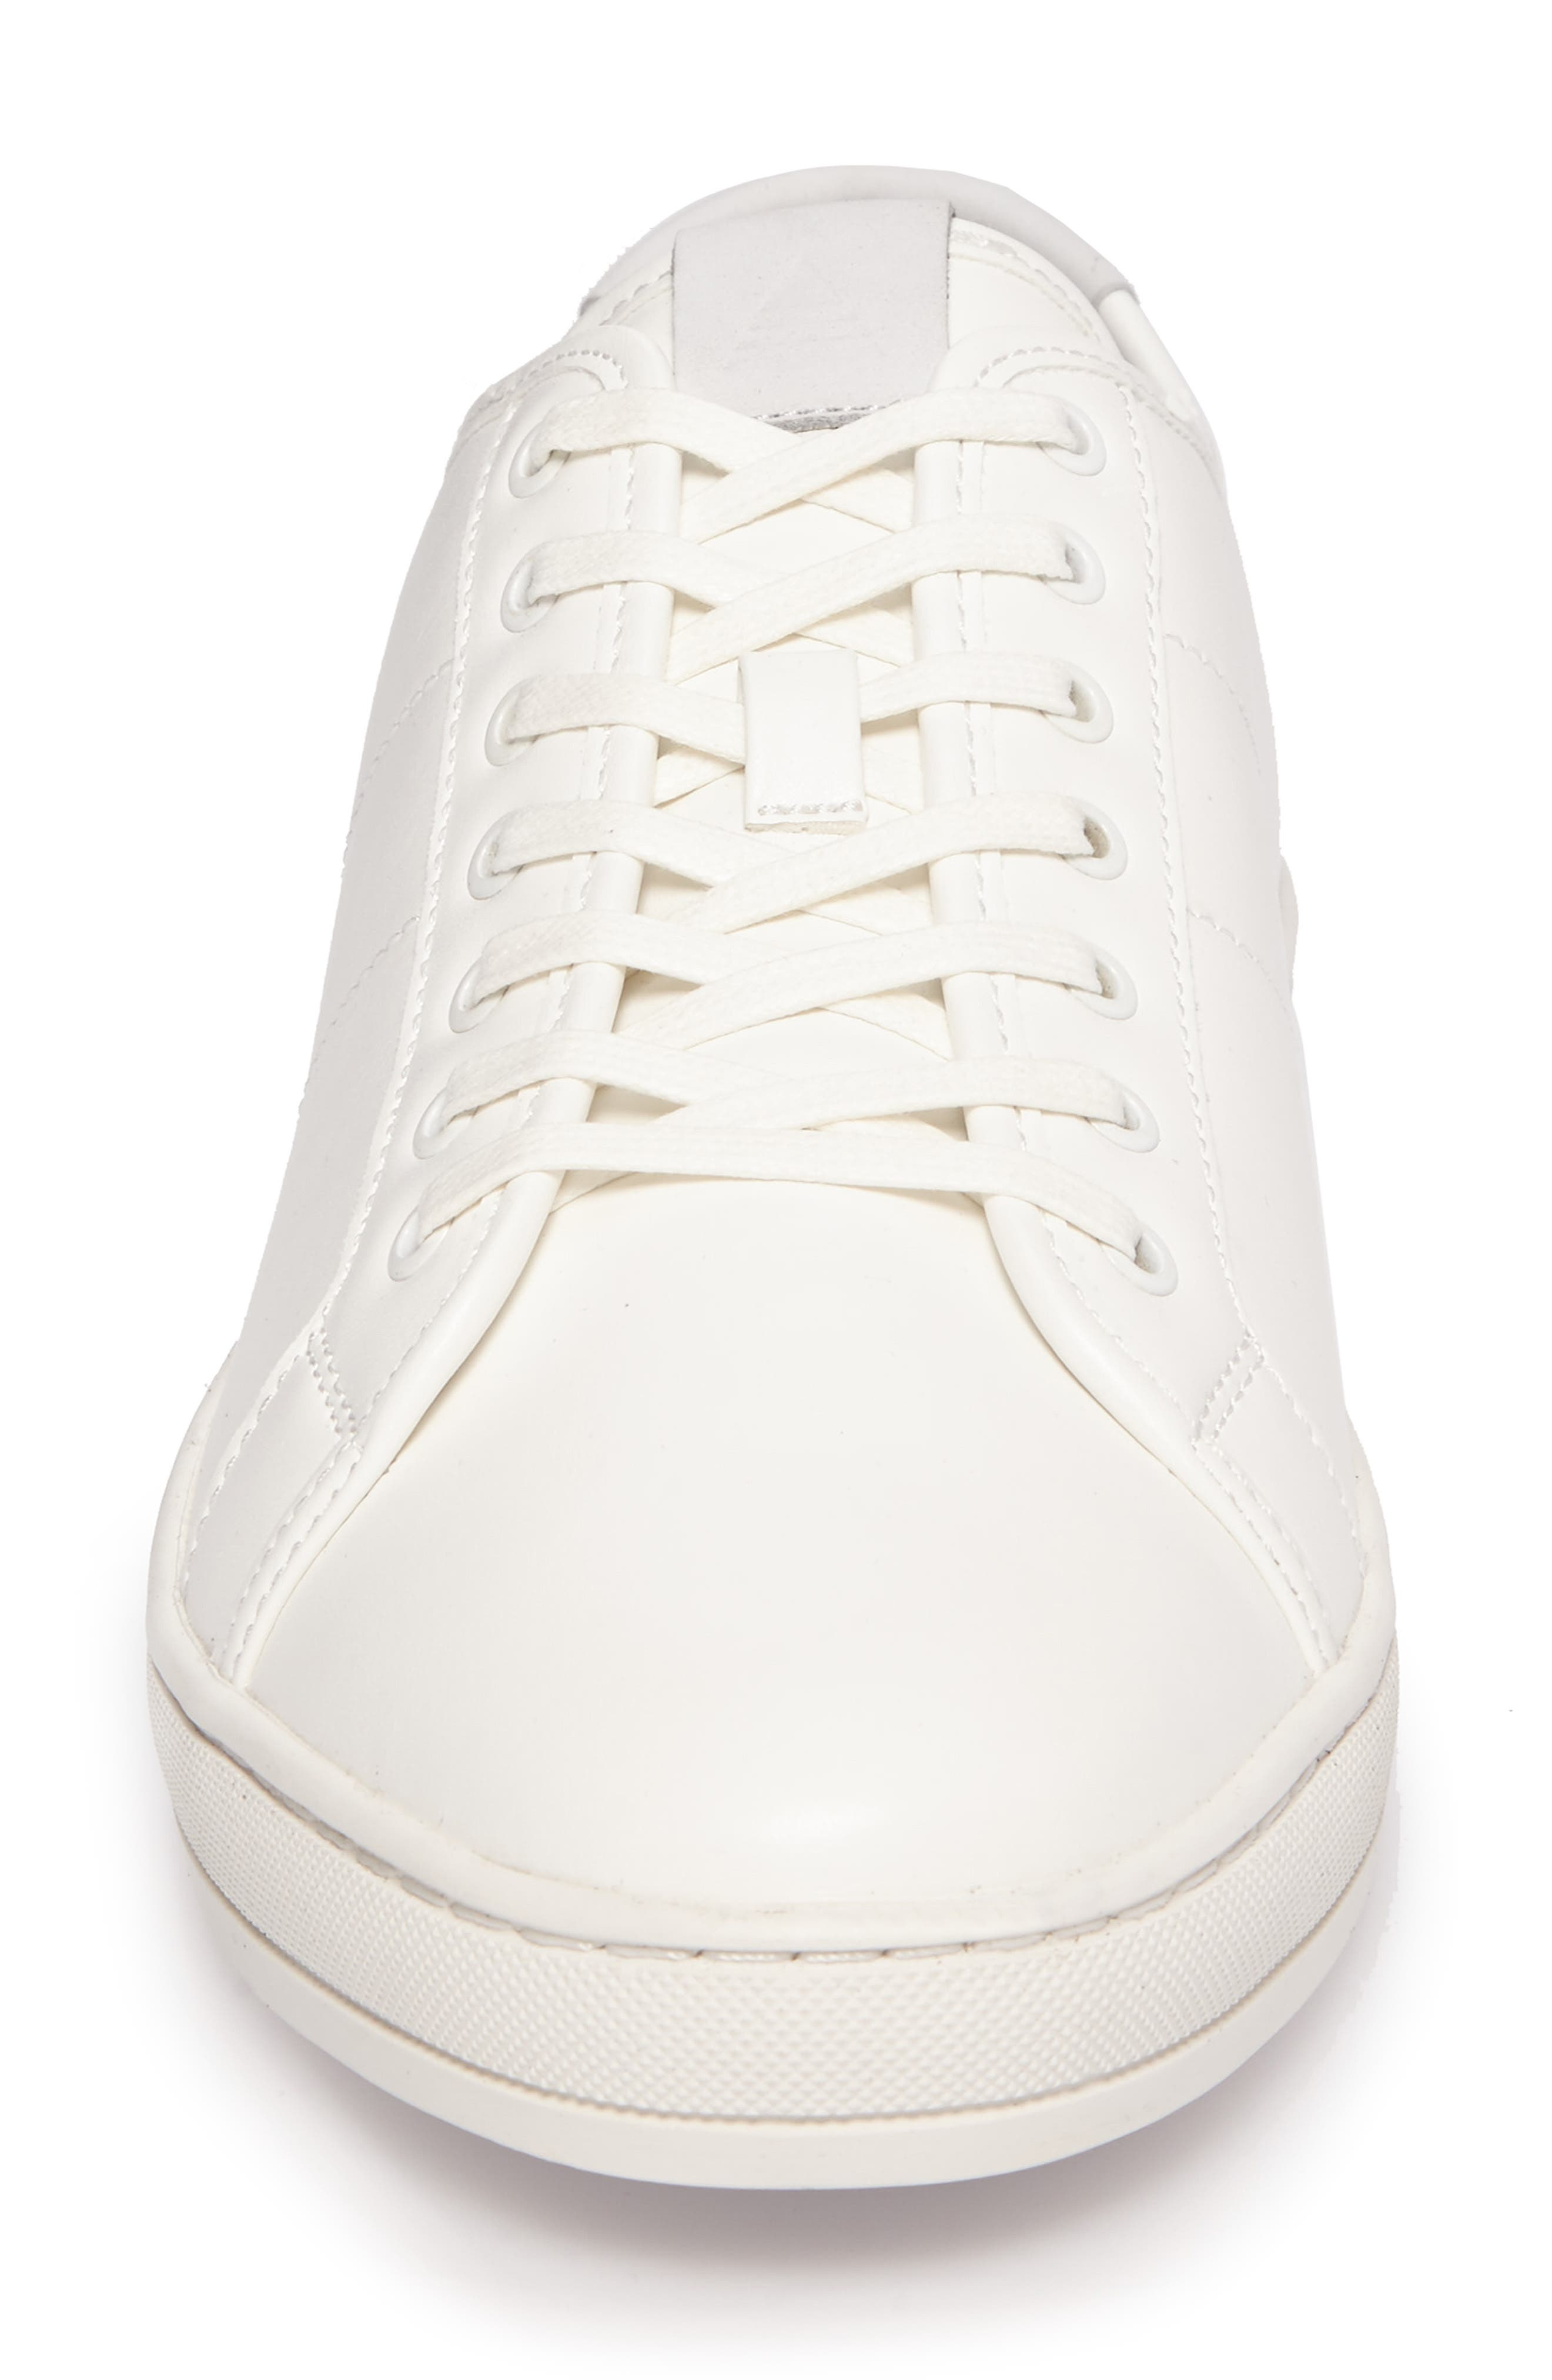 Delello Low-Top Sneaker,                             Alternate thumbnail 4, color,                             White